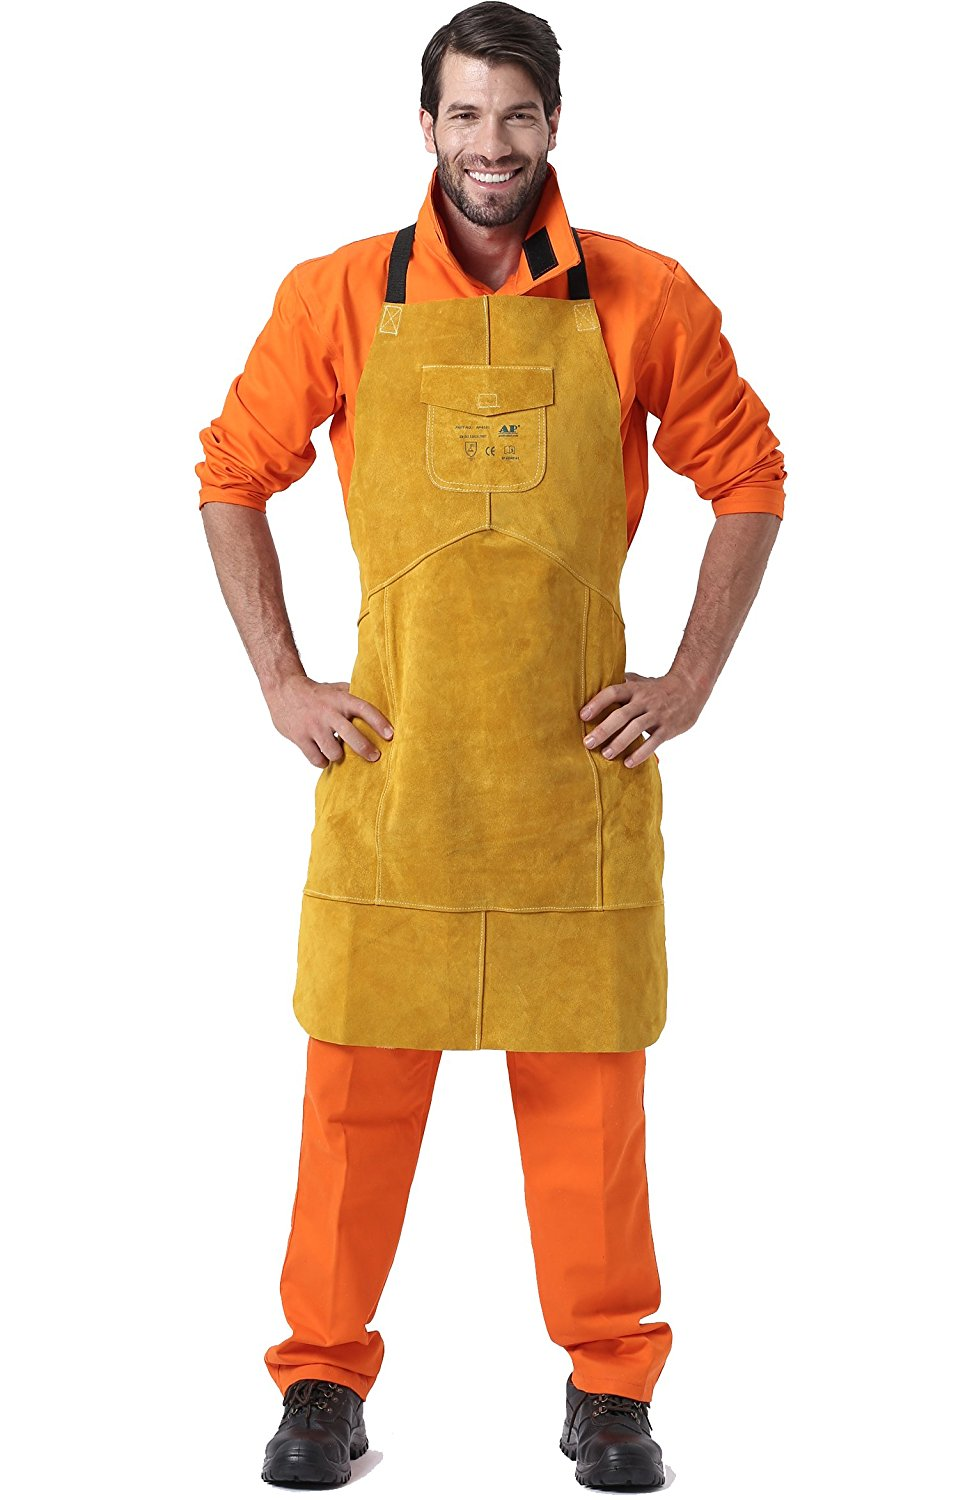 Welding Apron Premium Leather Welder Protect Clothing Carpenter Blacksmith Gardening Work Cowhide Clothing 95X56CM Golden Color